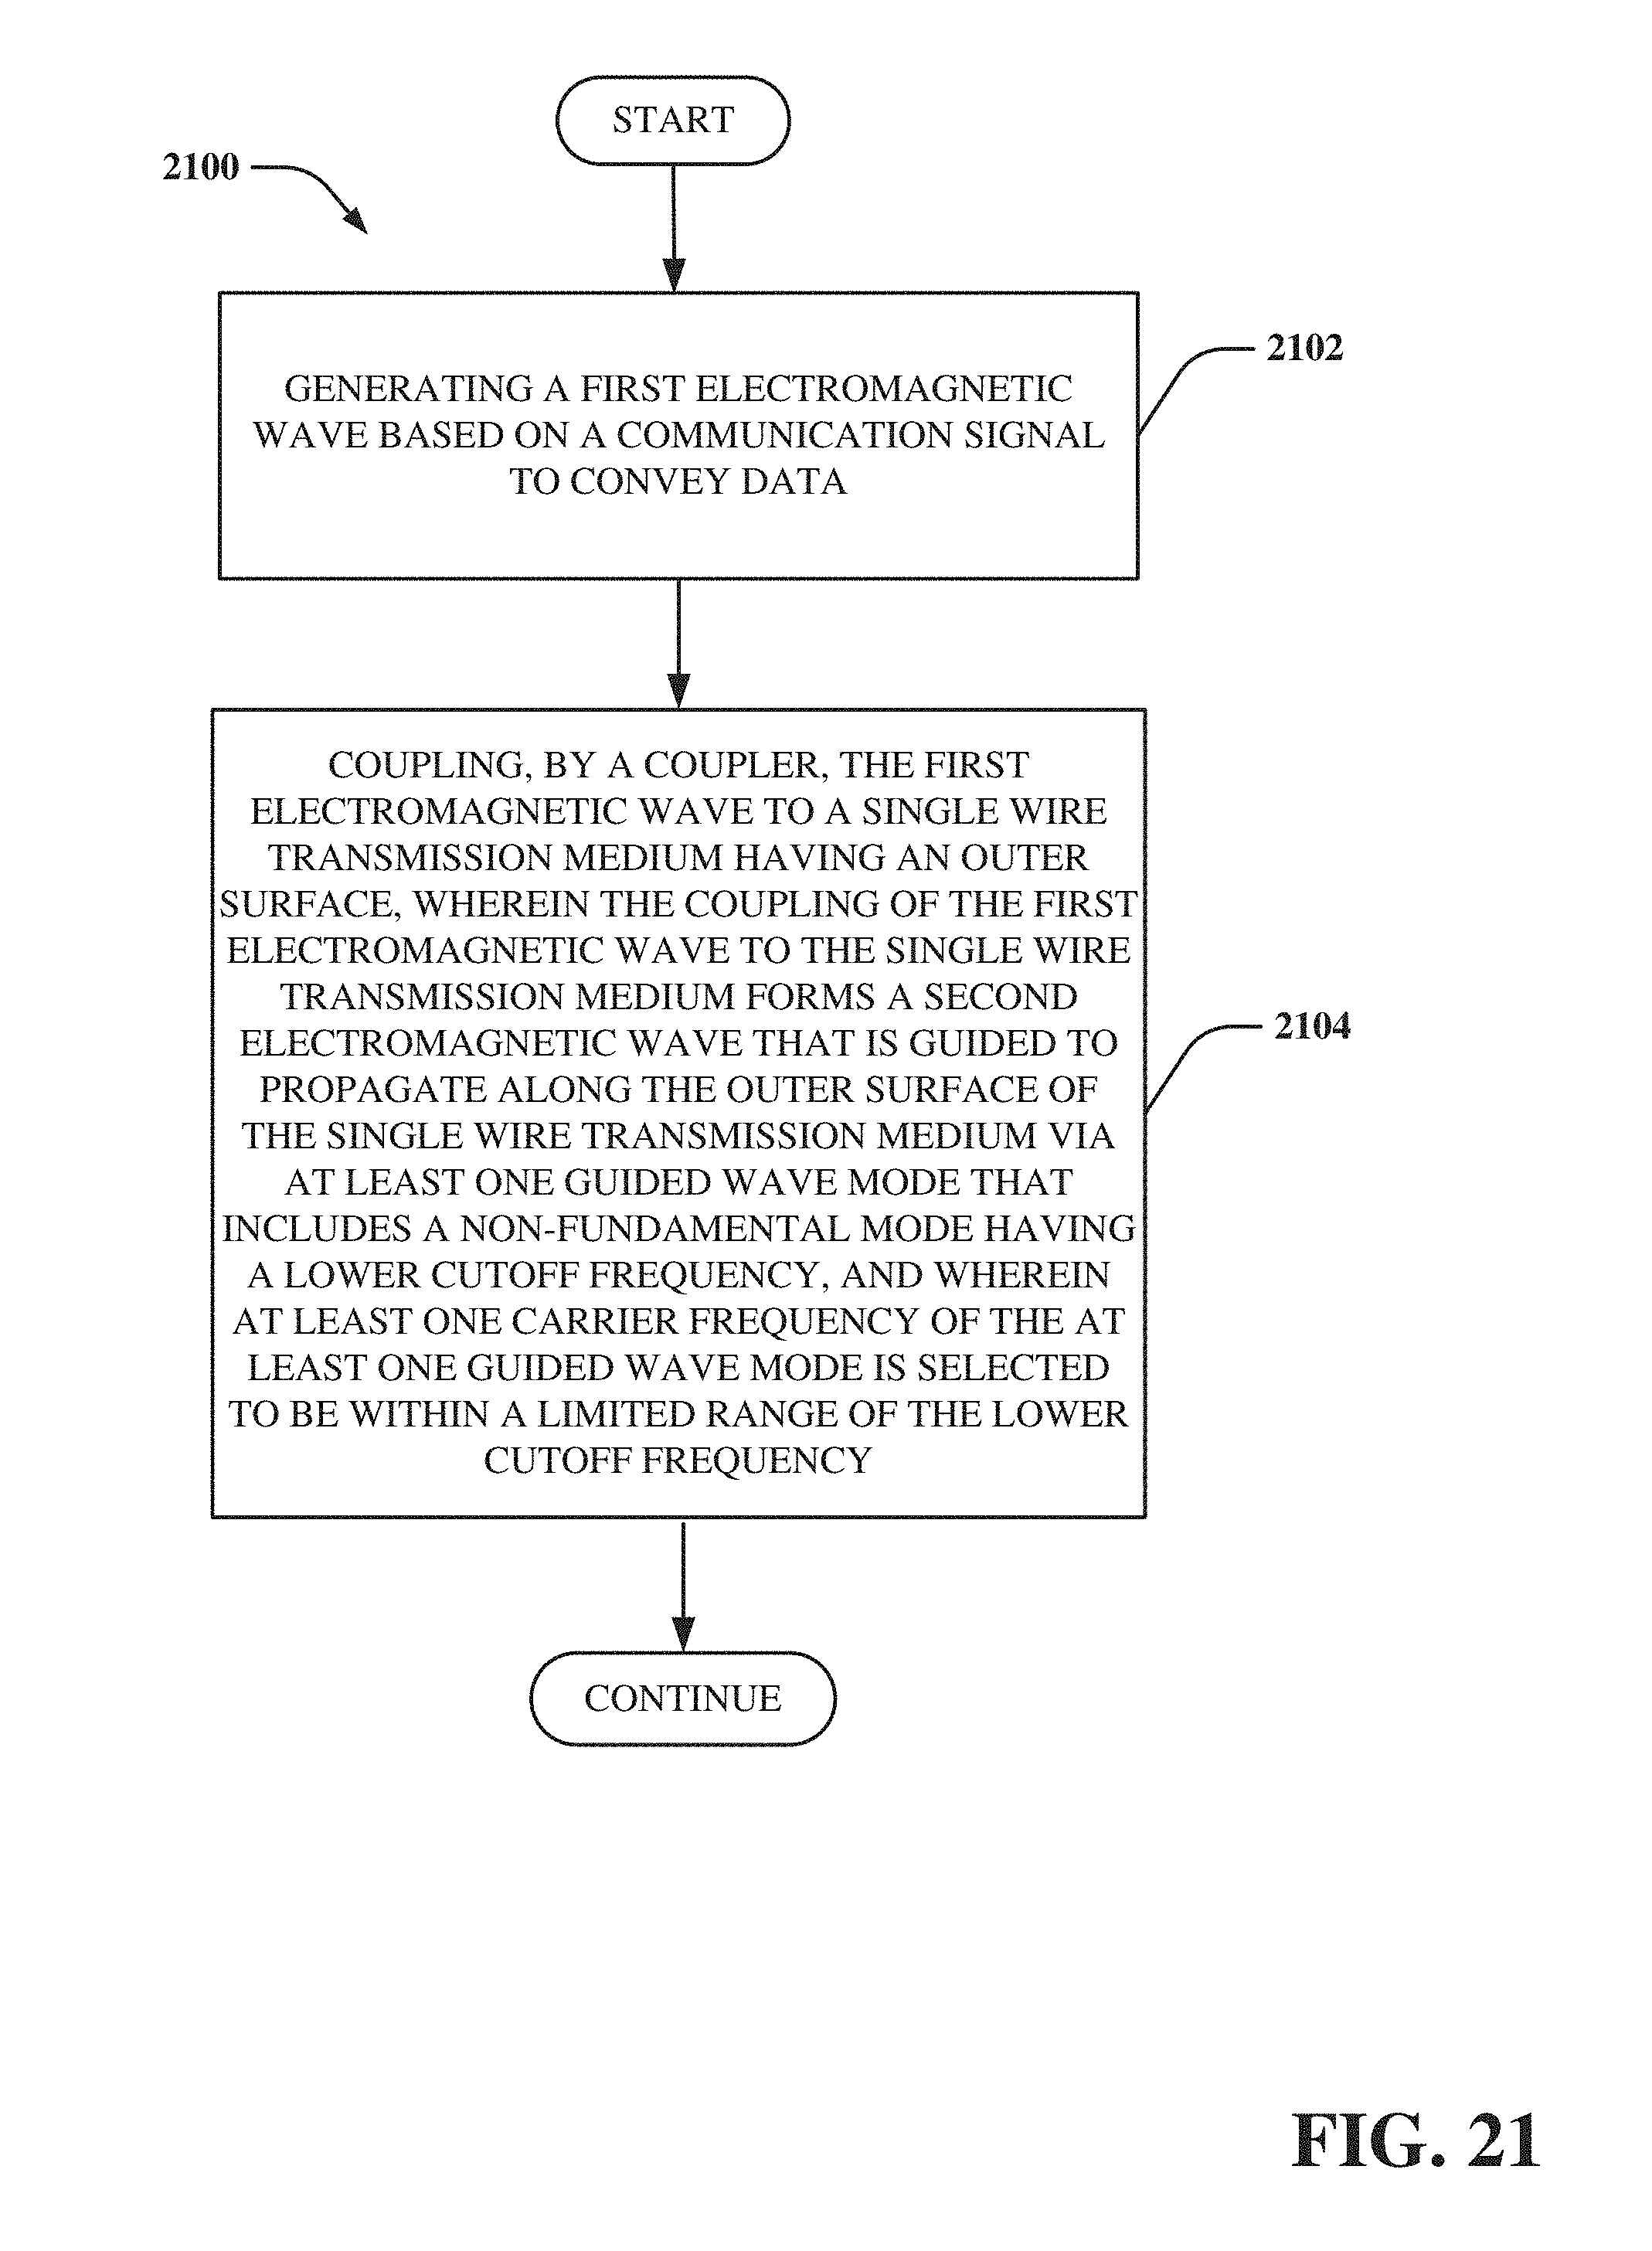 US9954286B2 - Guided-wave transmission device with non-fundamental